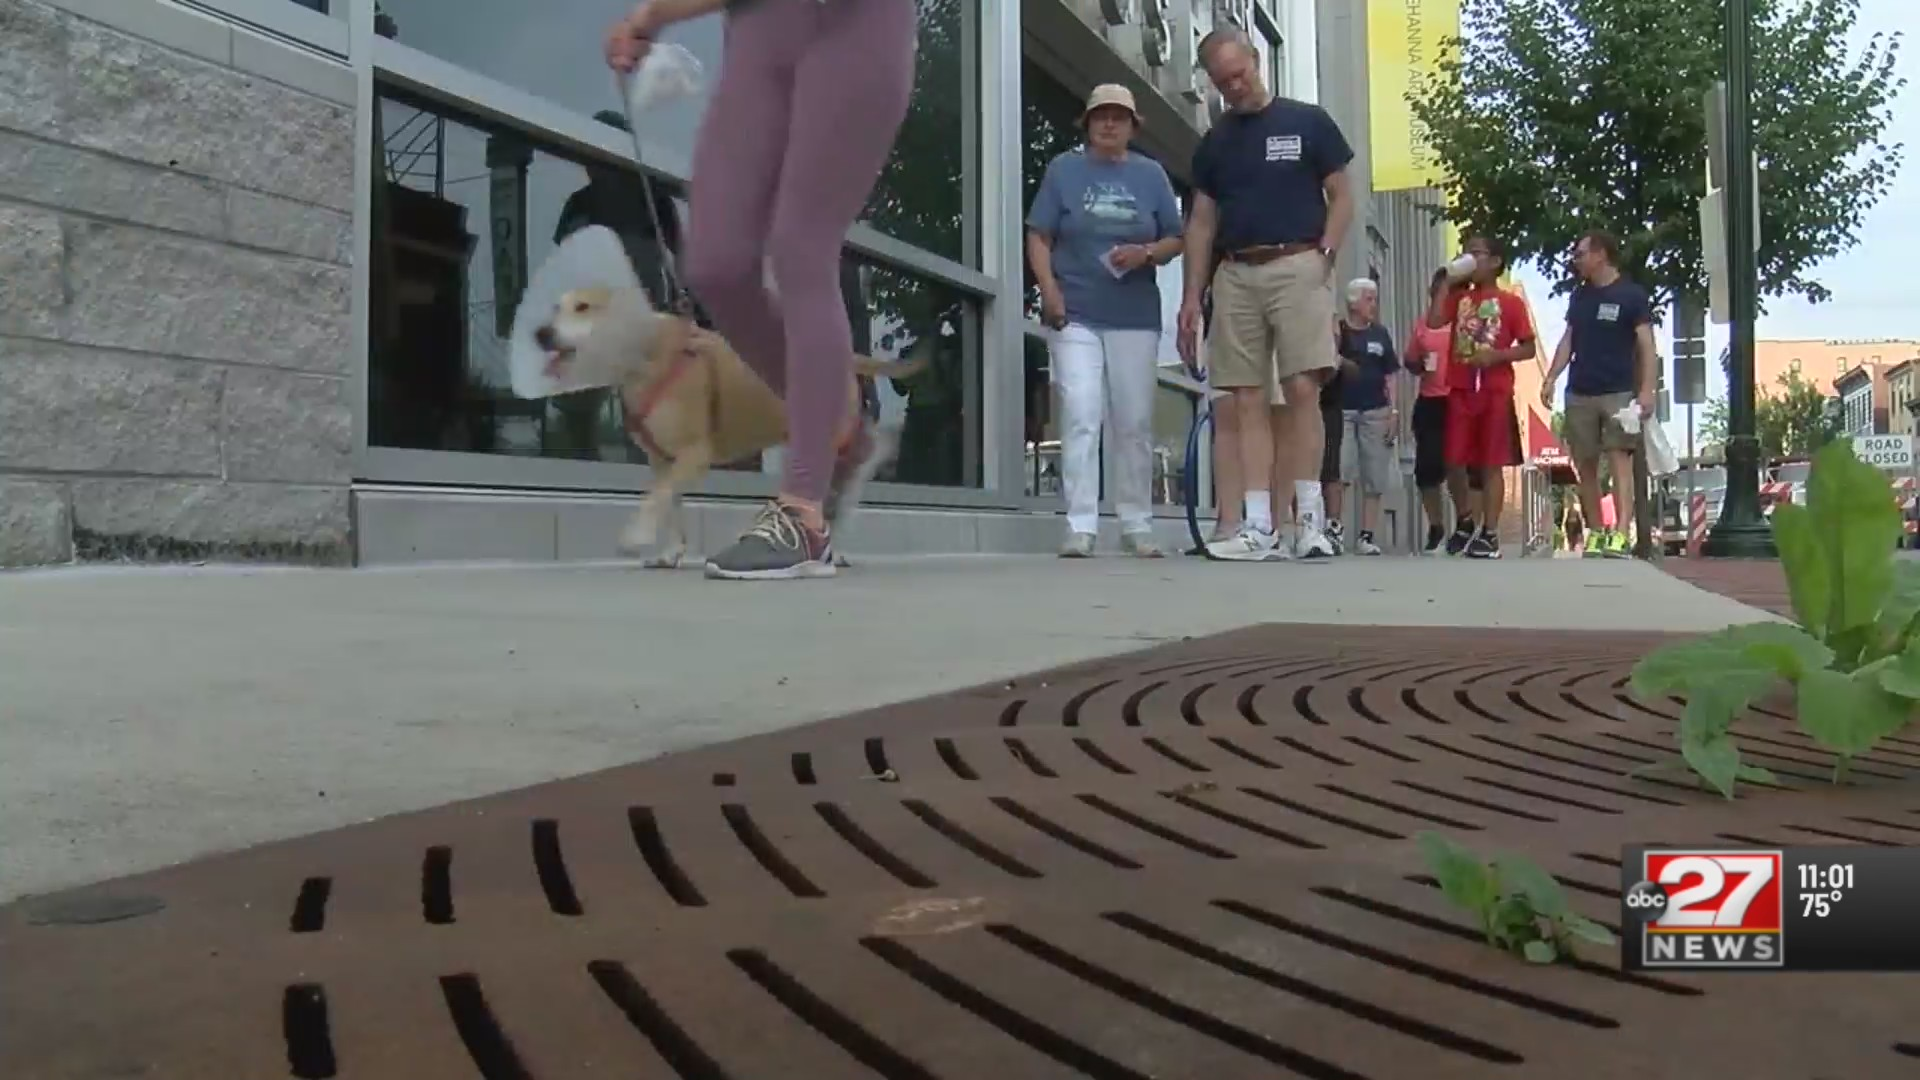 Friends of Midtown hosts patrols for public safety